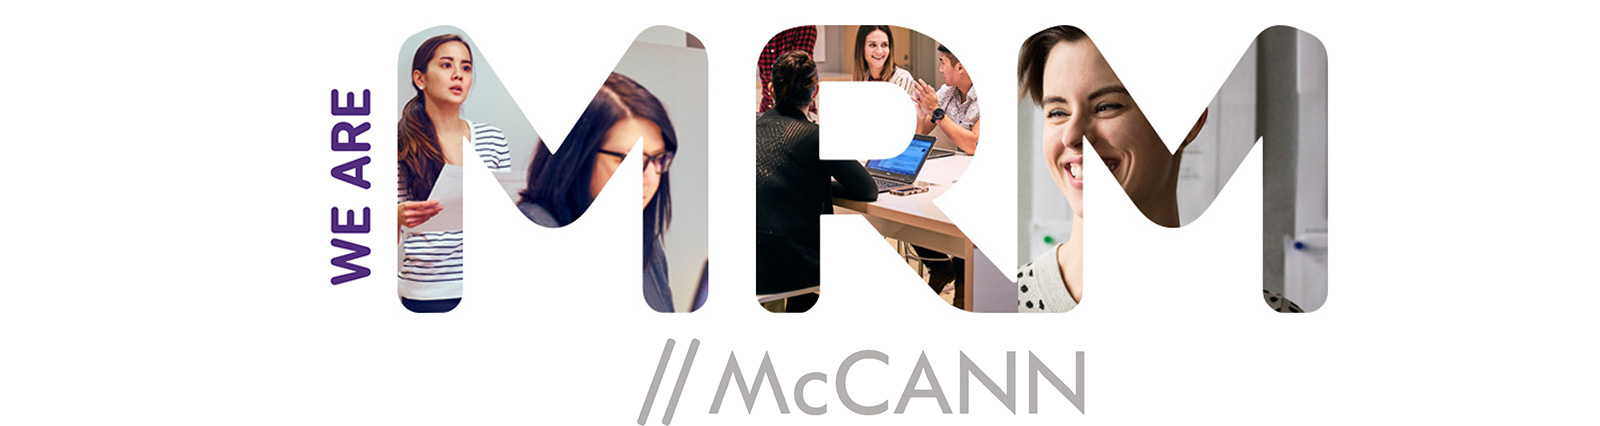 We Are MRM // McCann customer relationship agency logo